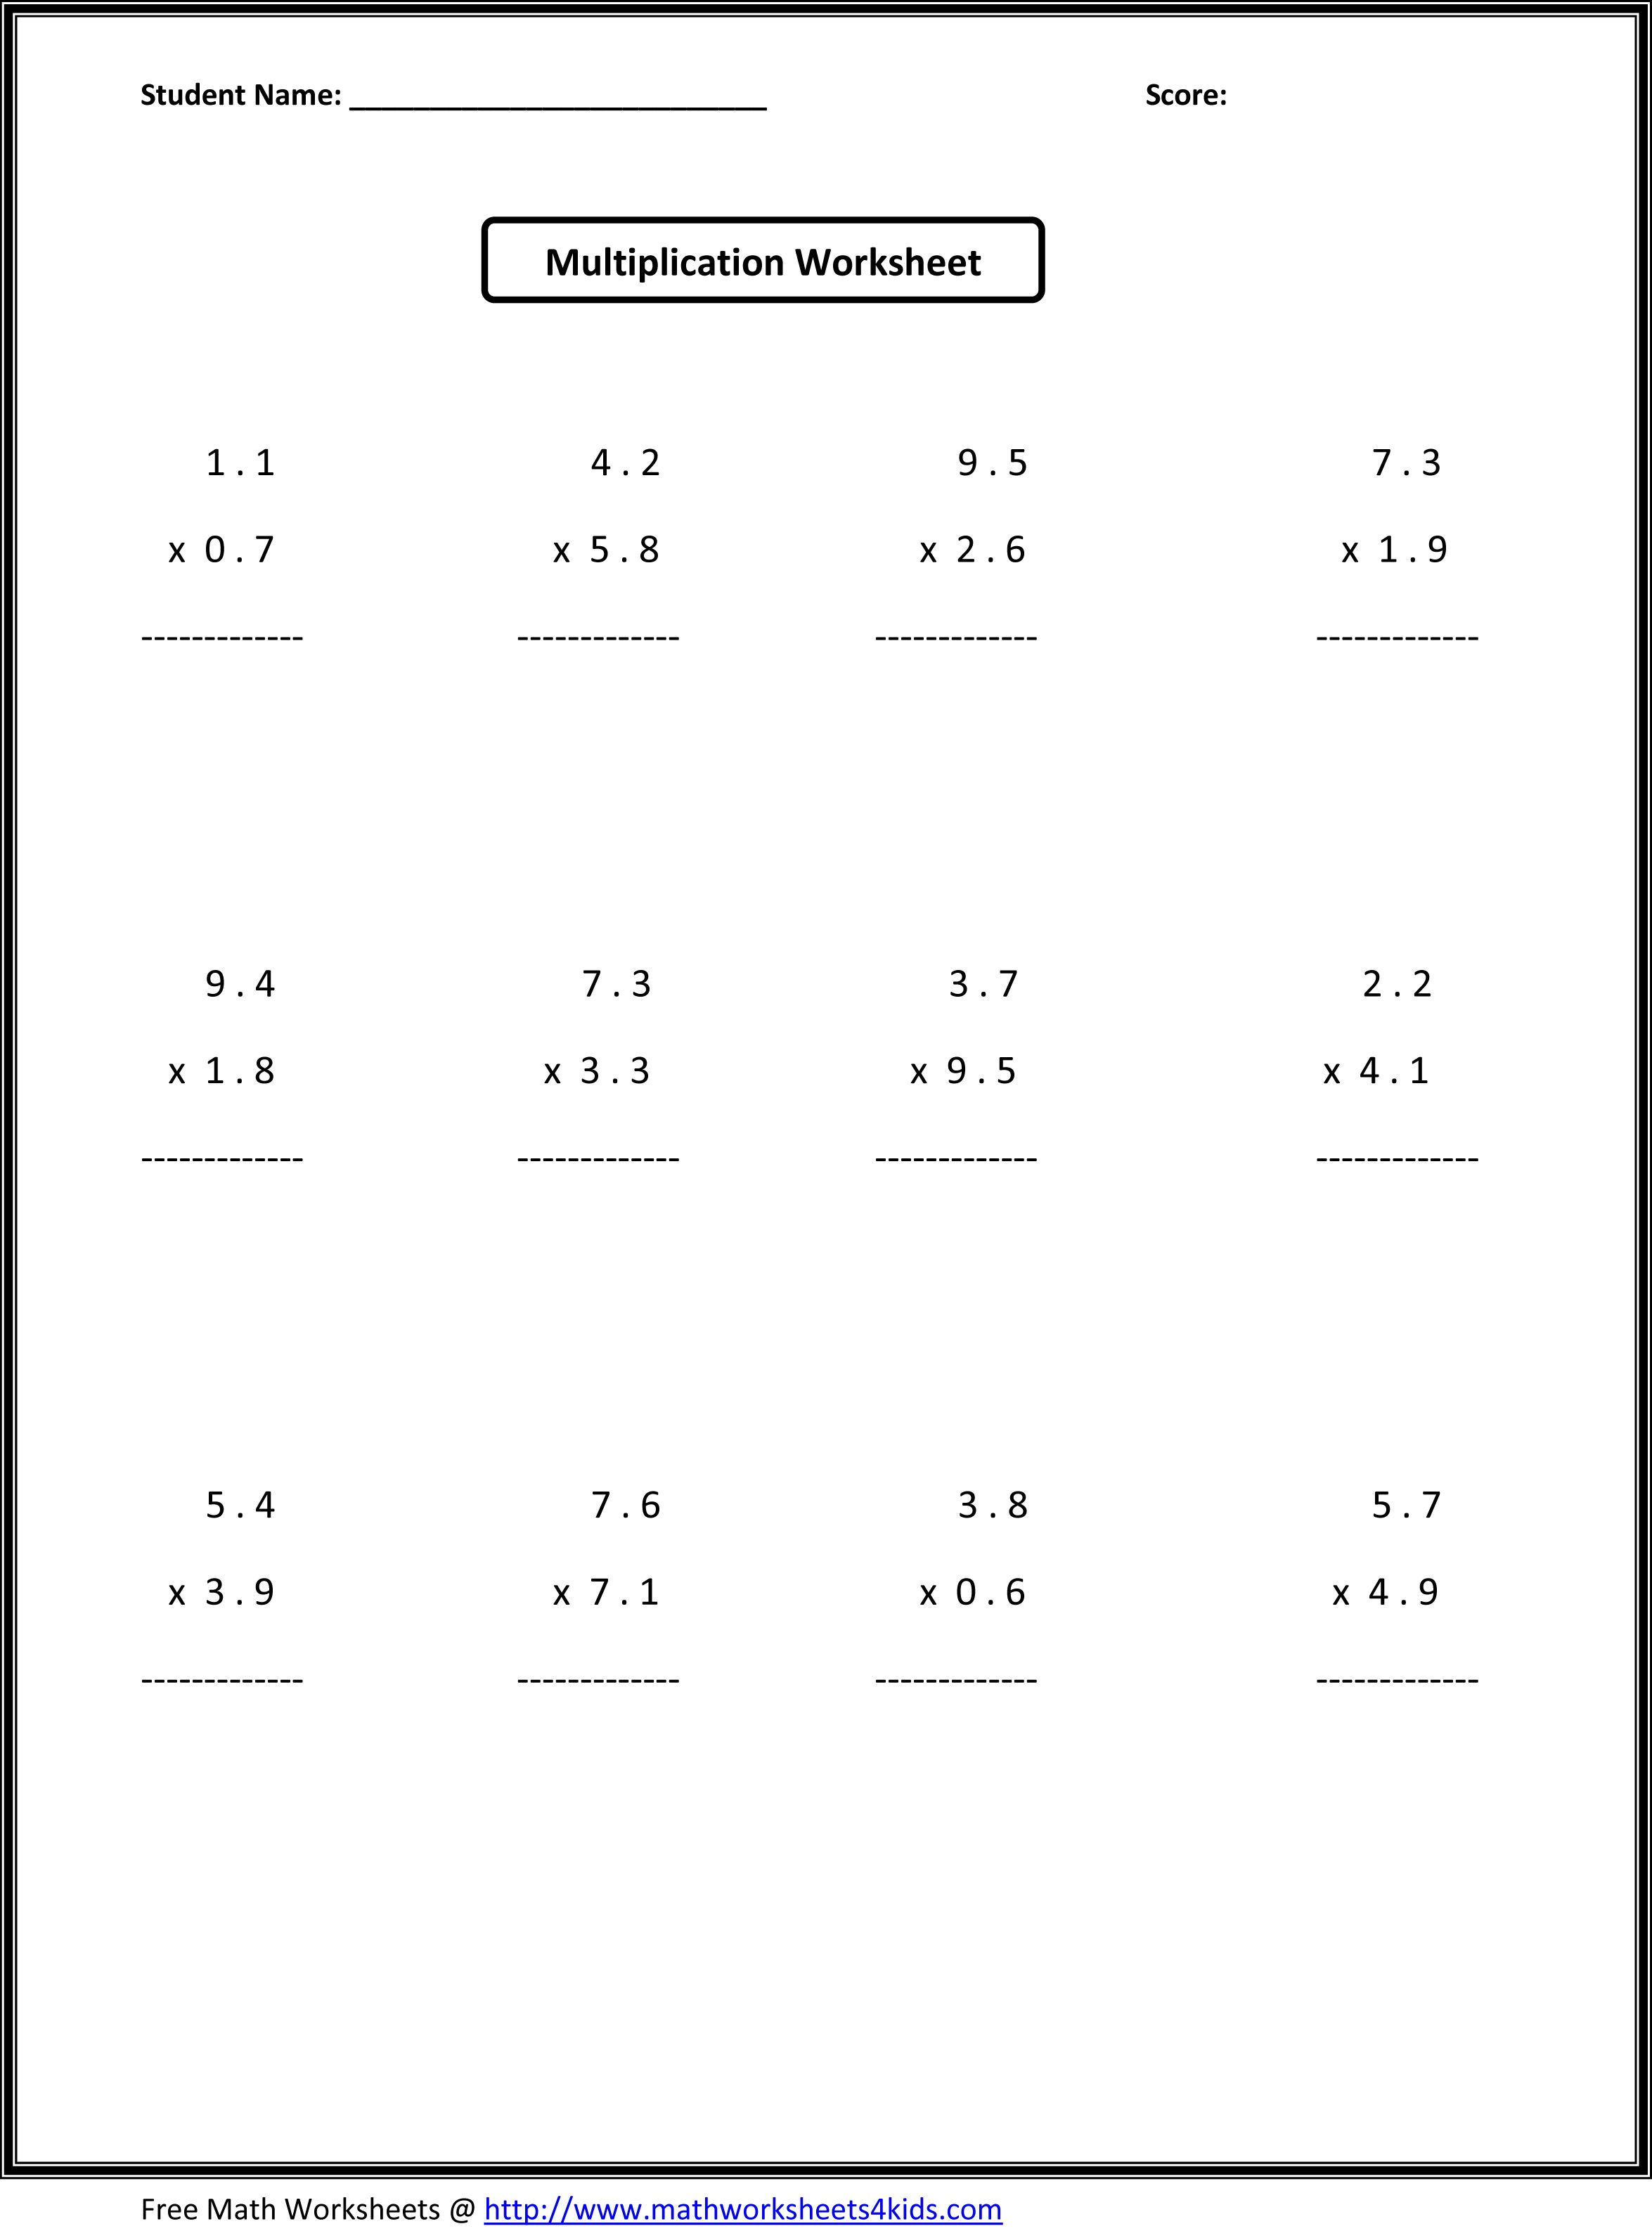 math worksheet : 1000 images about math on pinterest  7th grade math worksheets  : Free Printable Math Worksheets For 8th Grade